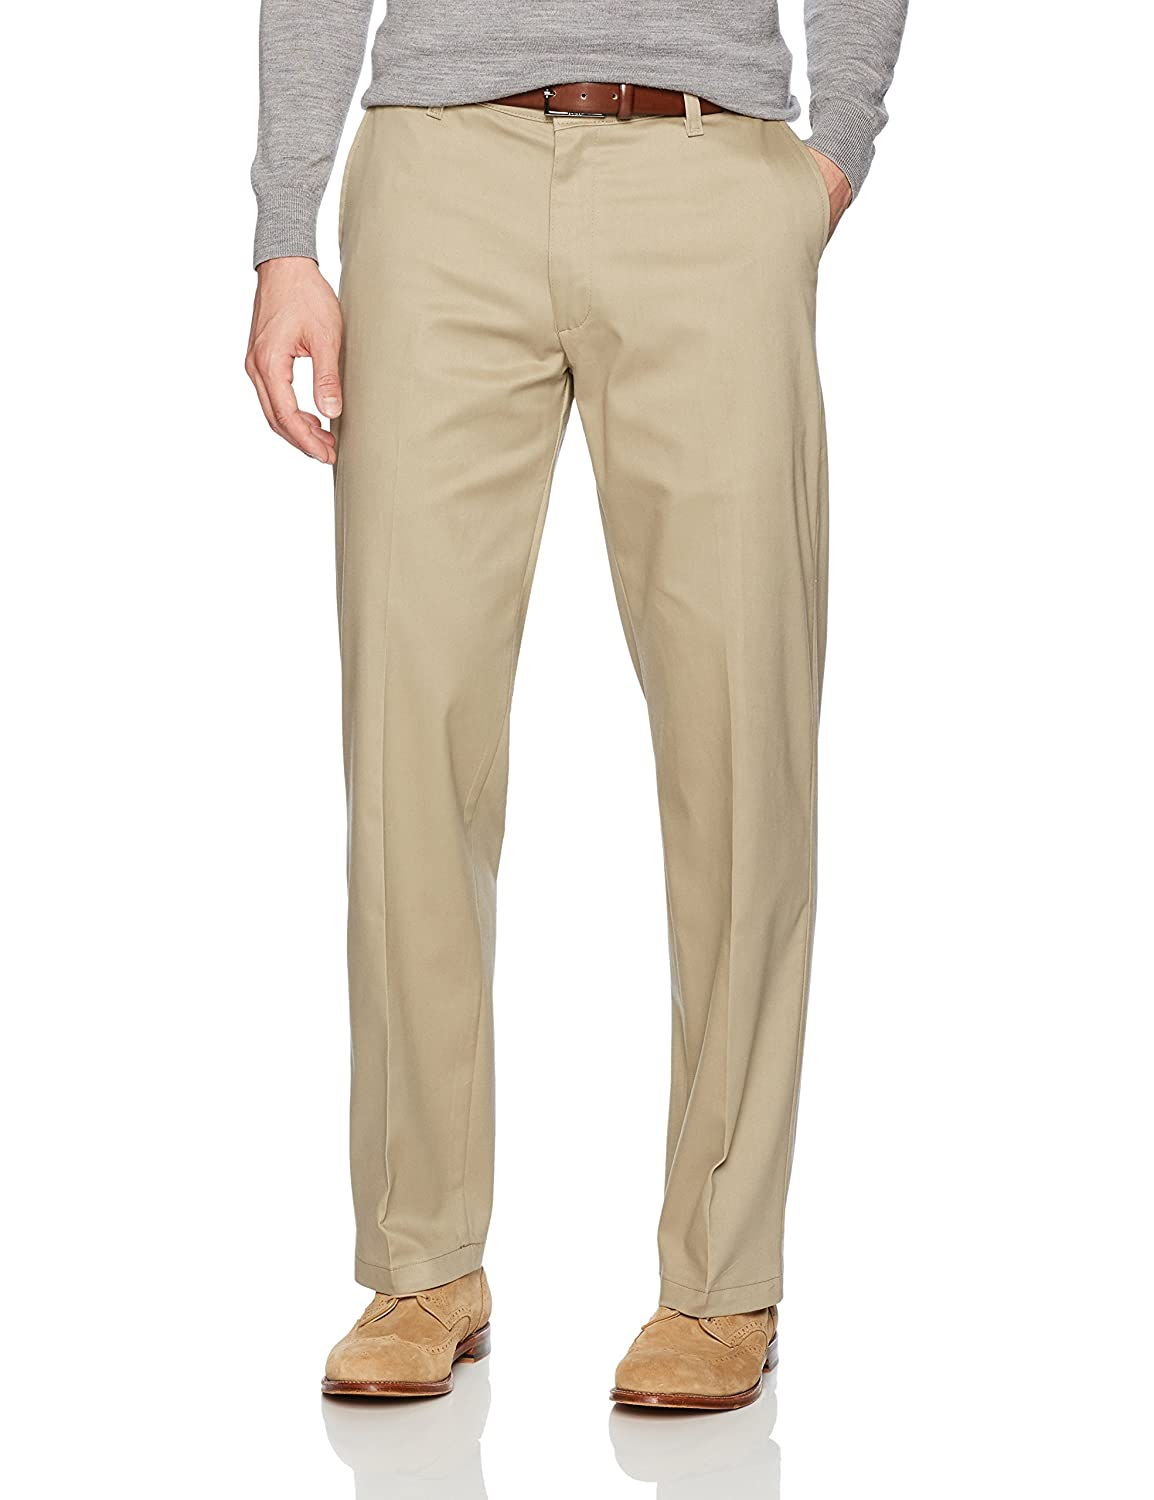 LEE Mens Total Freedom Stretch Relaxed Fit Flat Front Pant